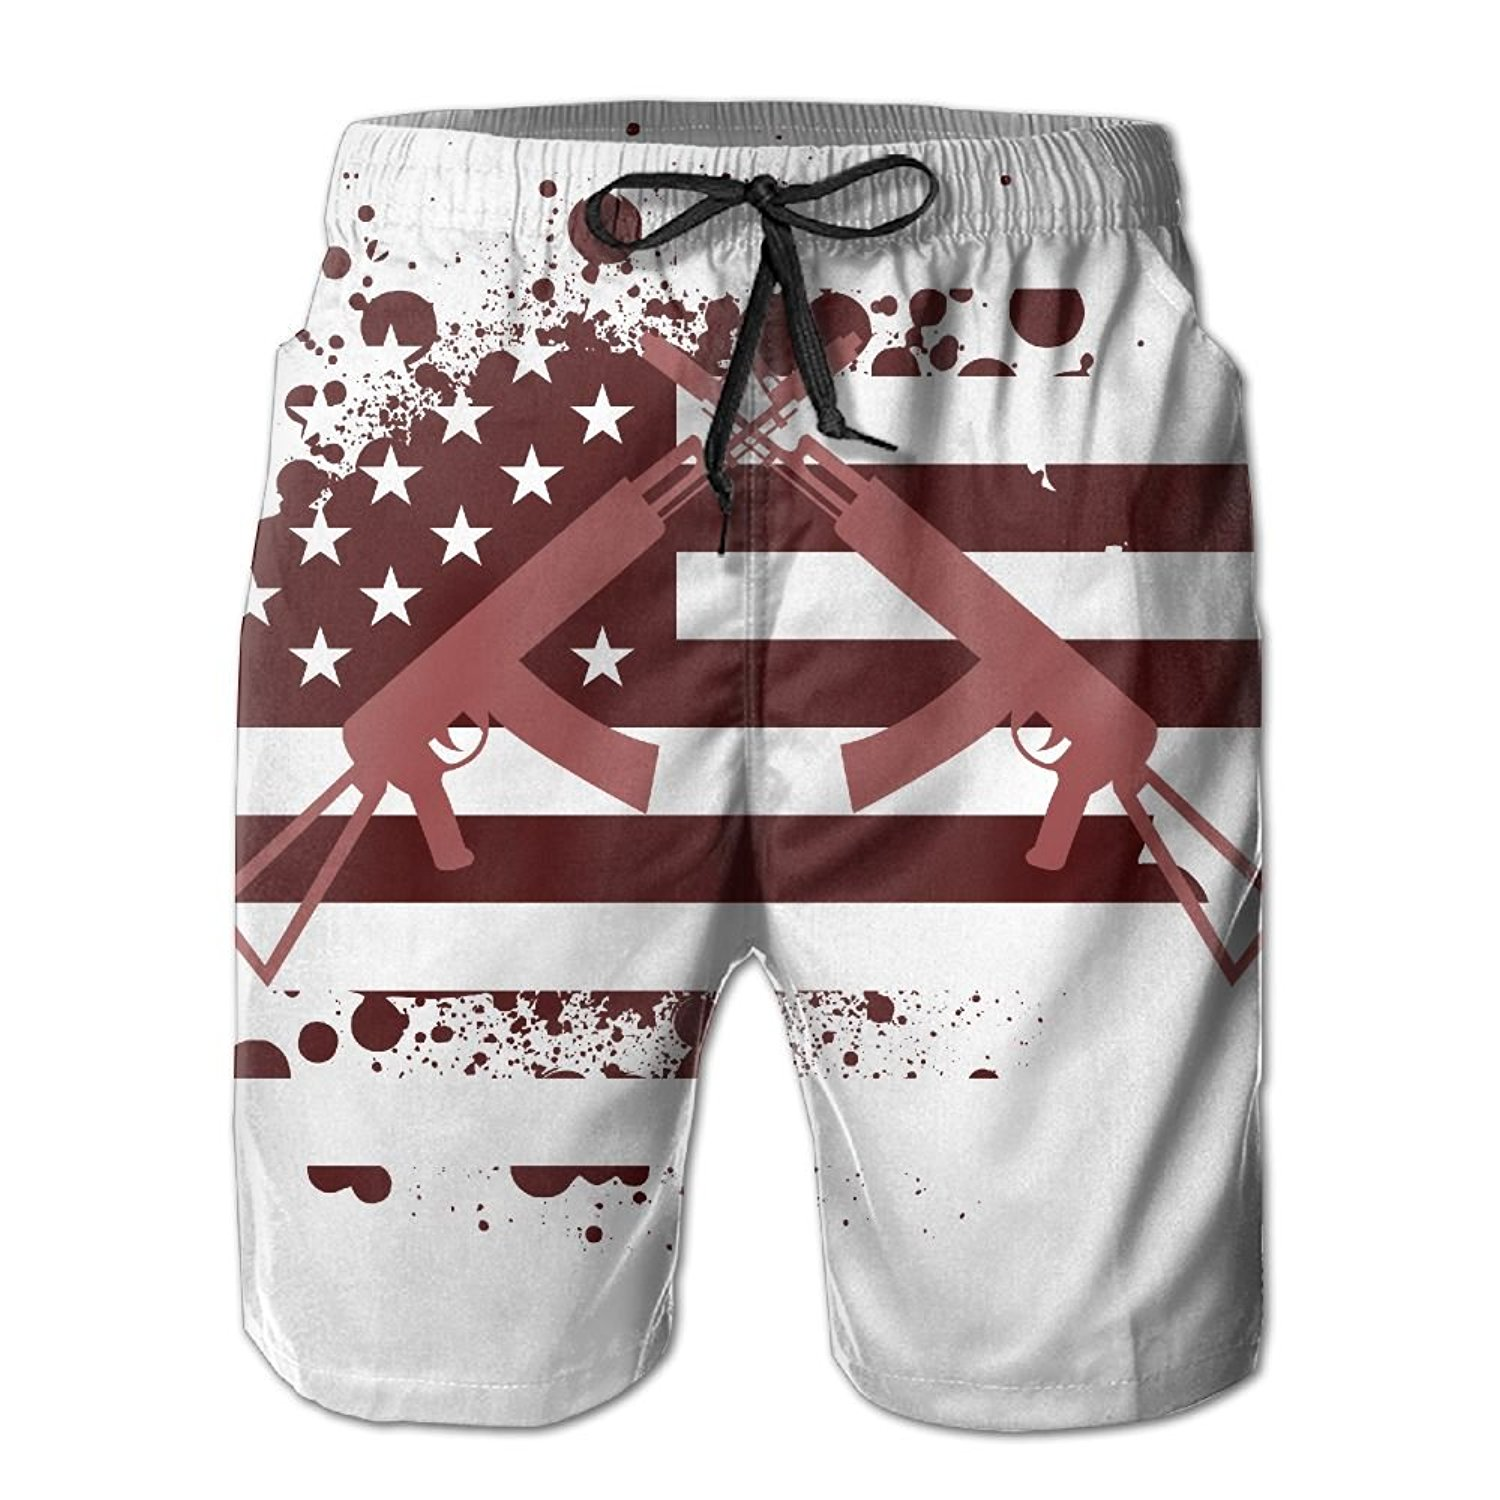 a1a23440ae Get Quotations · American Flag Guns Summer Quick Dry Casual Swim Trunks  With Pockets